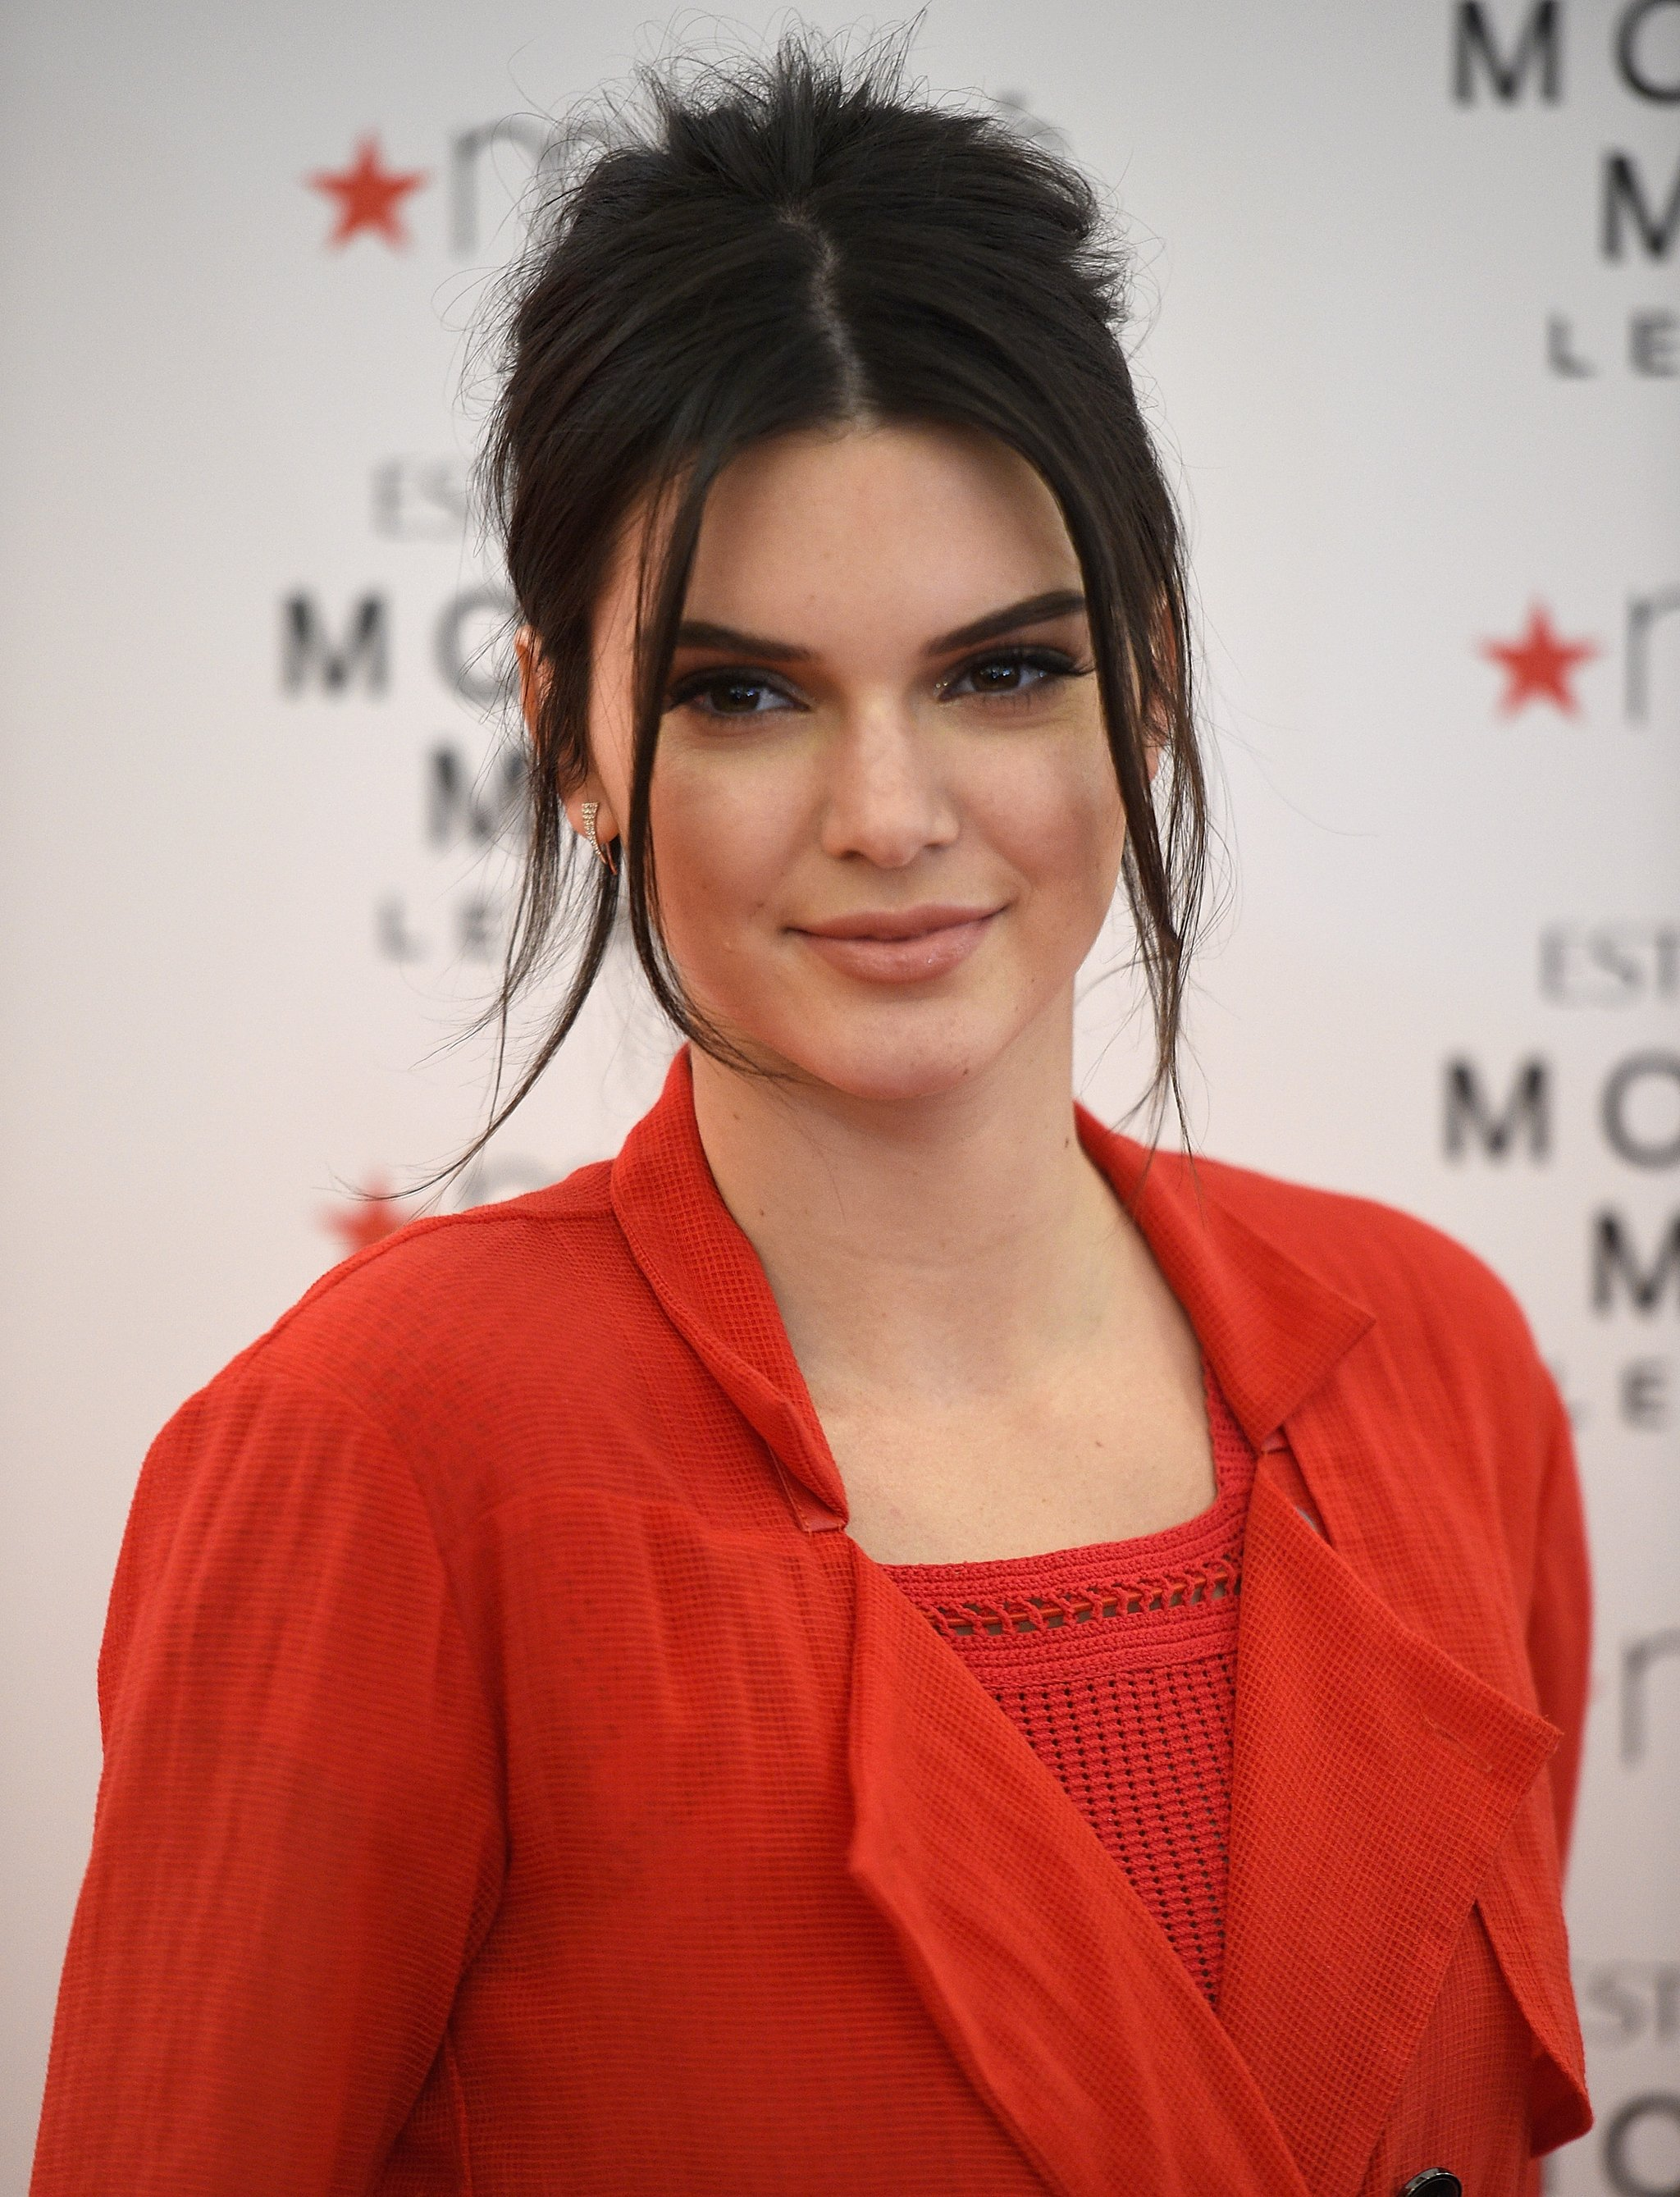 Kendall Jenner Hot Bikini Pictures, Sexy Images